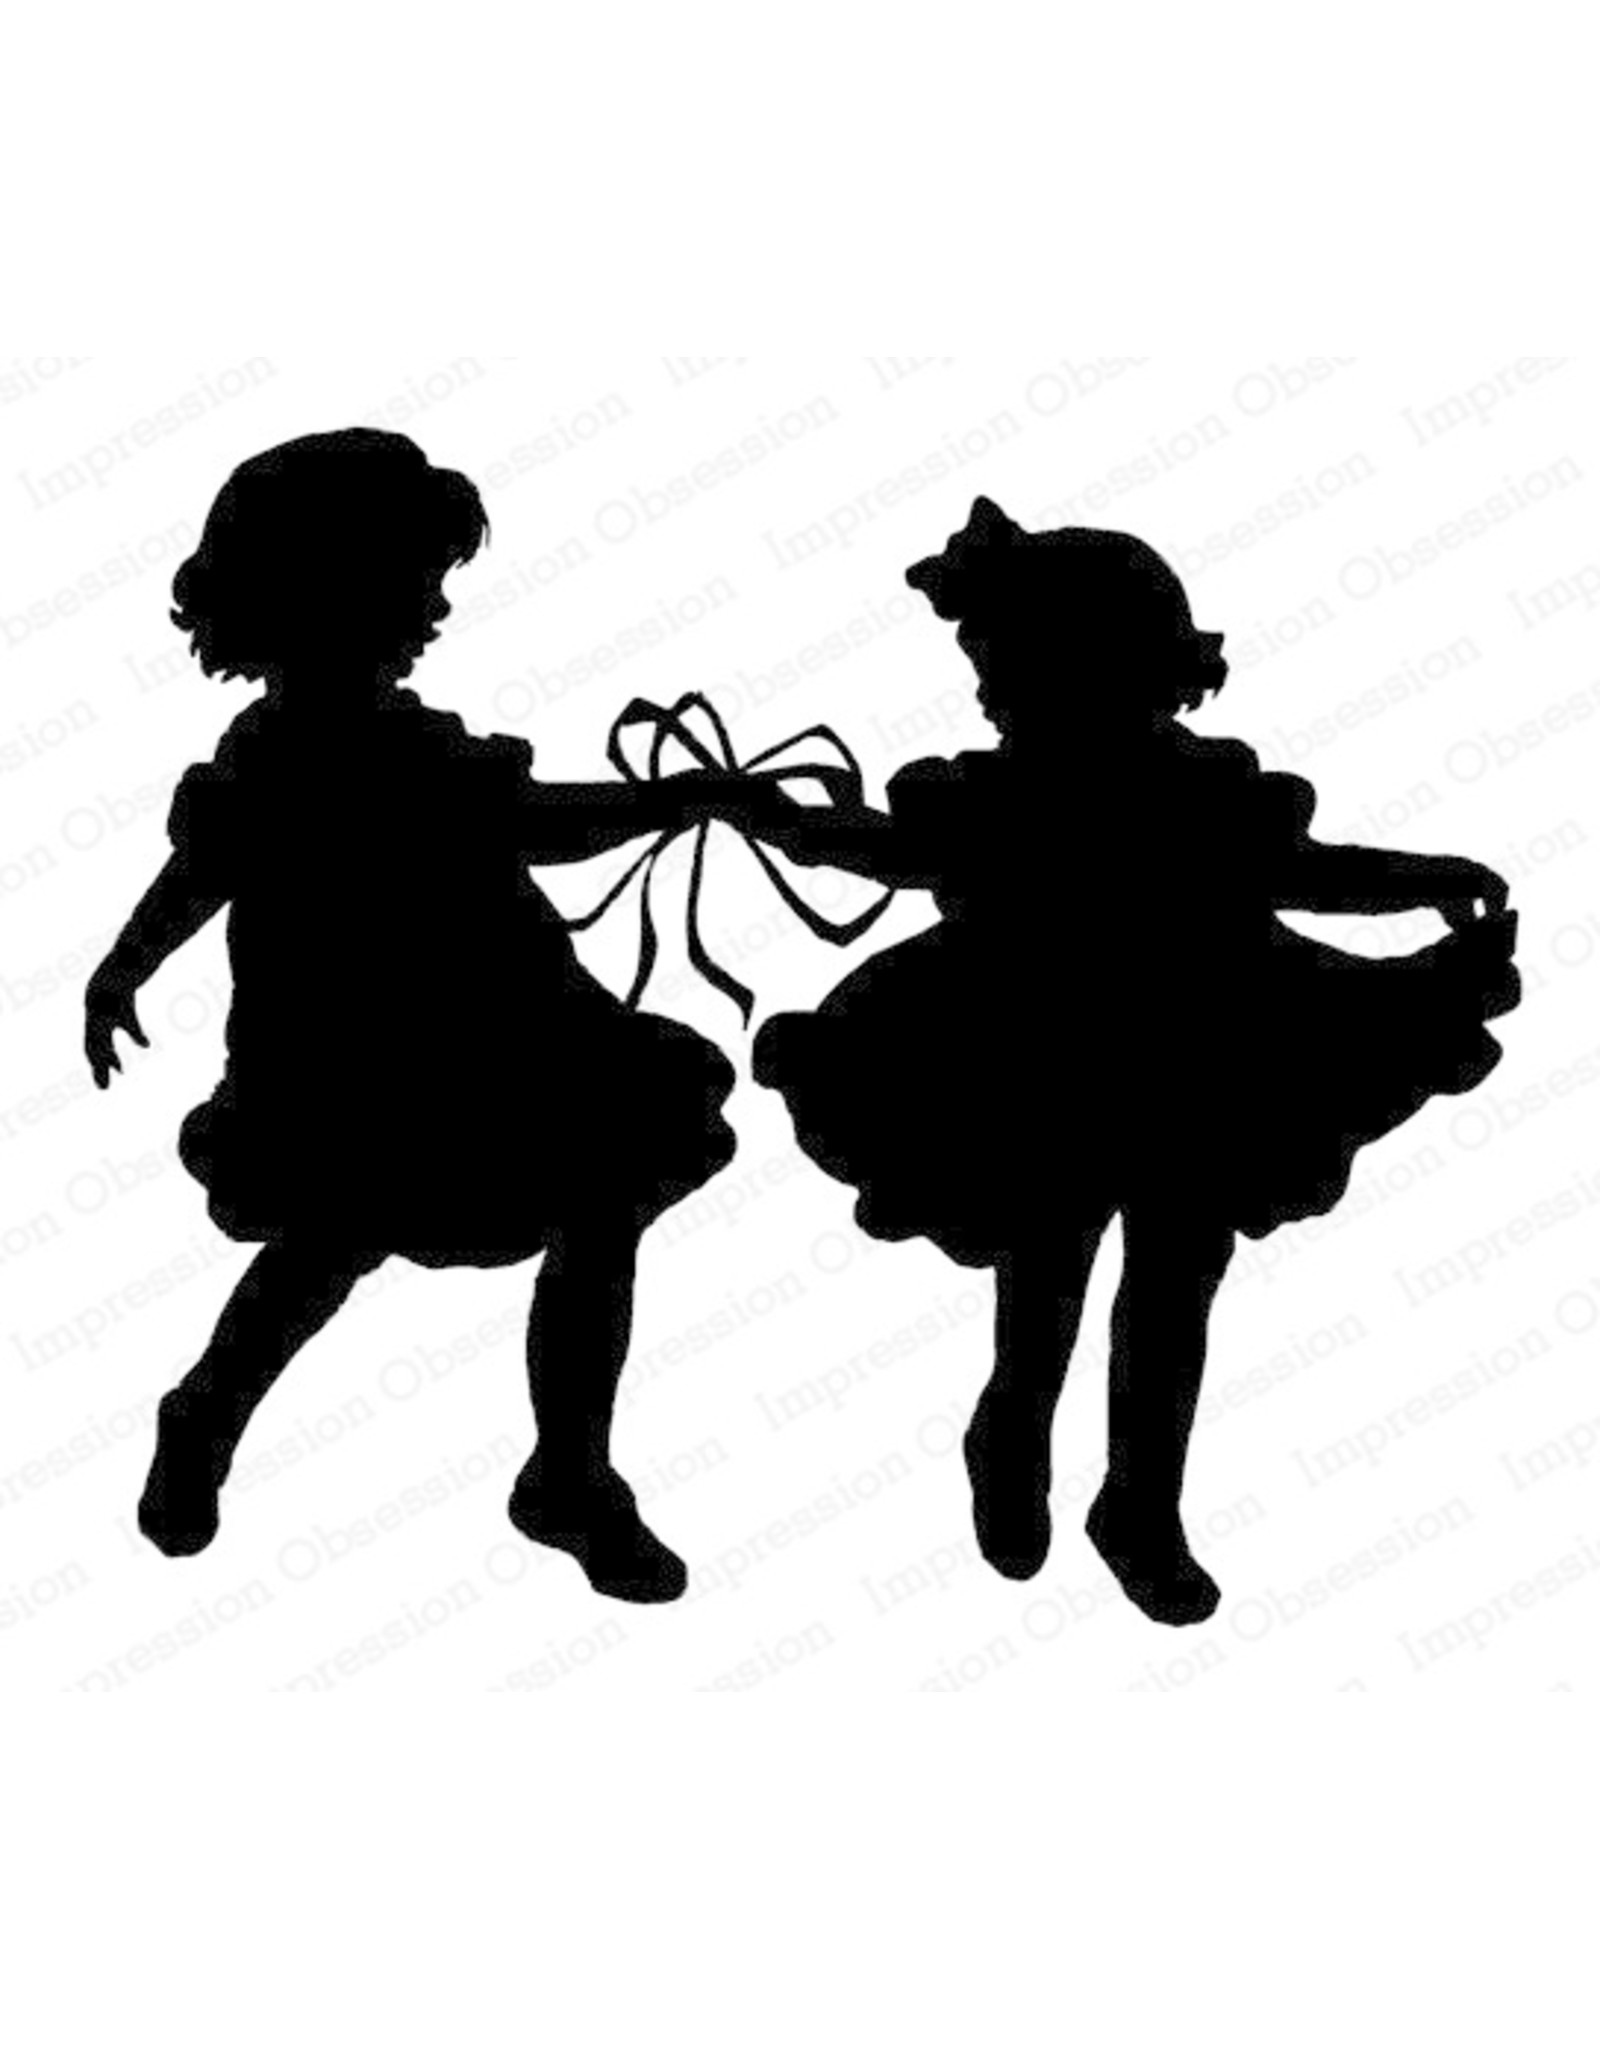 Impression Obsession Ribbon Dance Silhouette - Cling Stamp